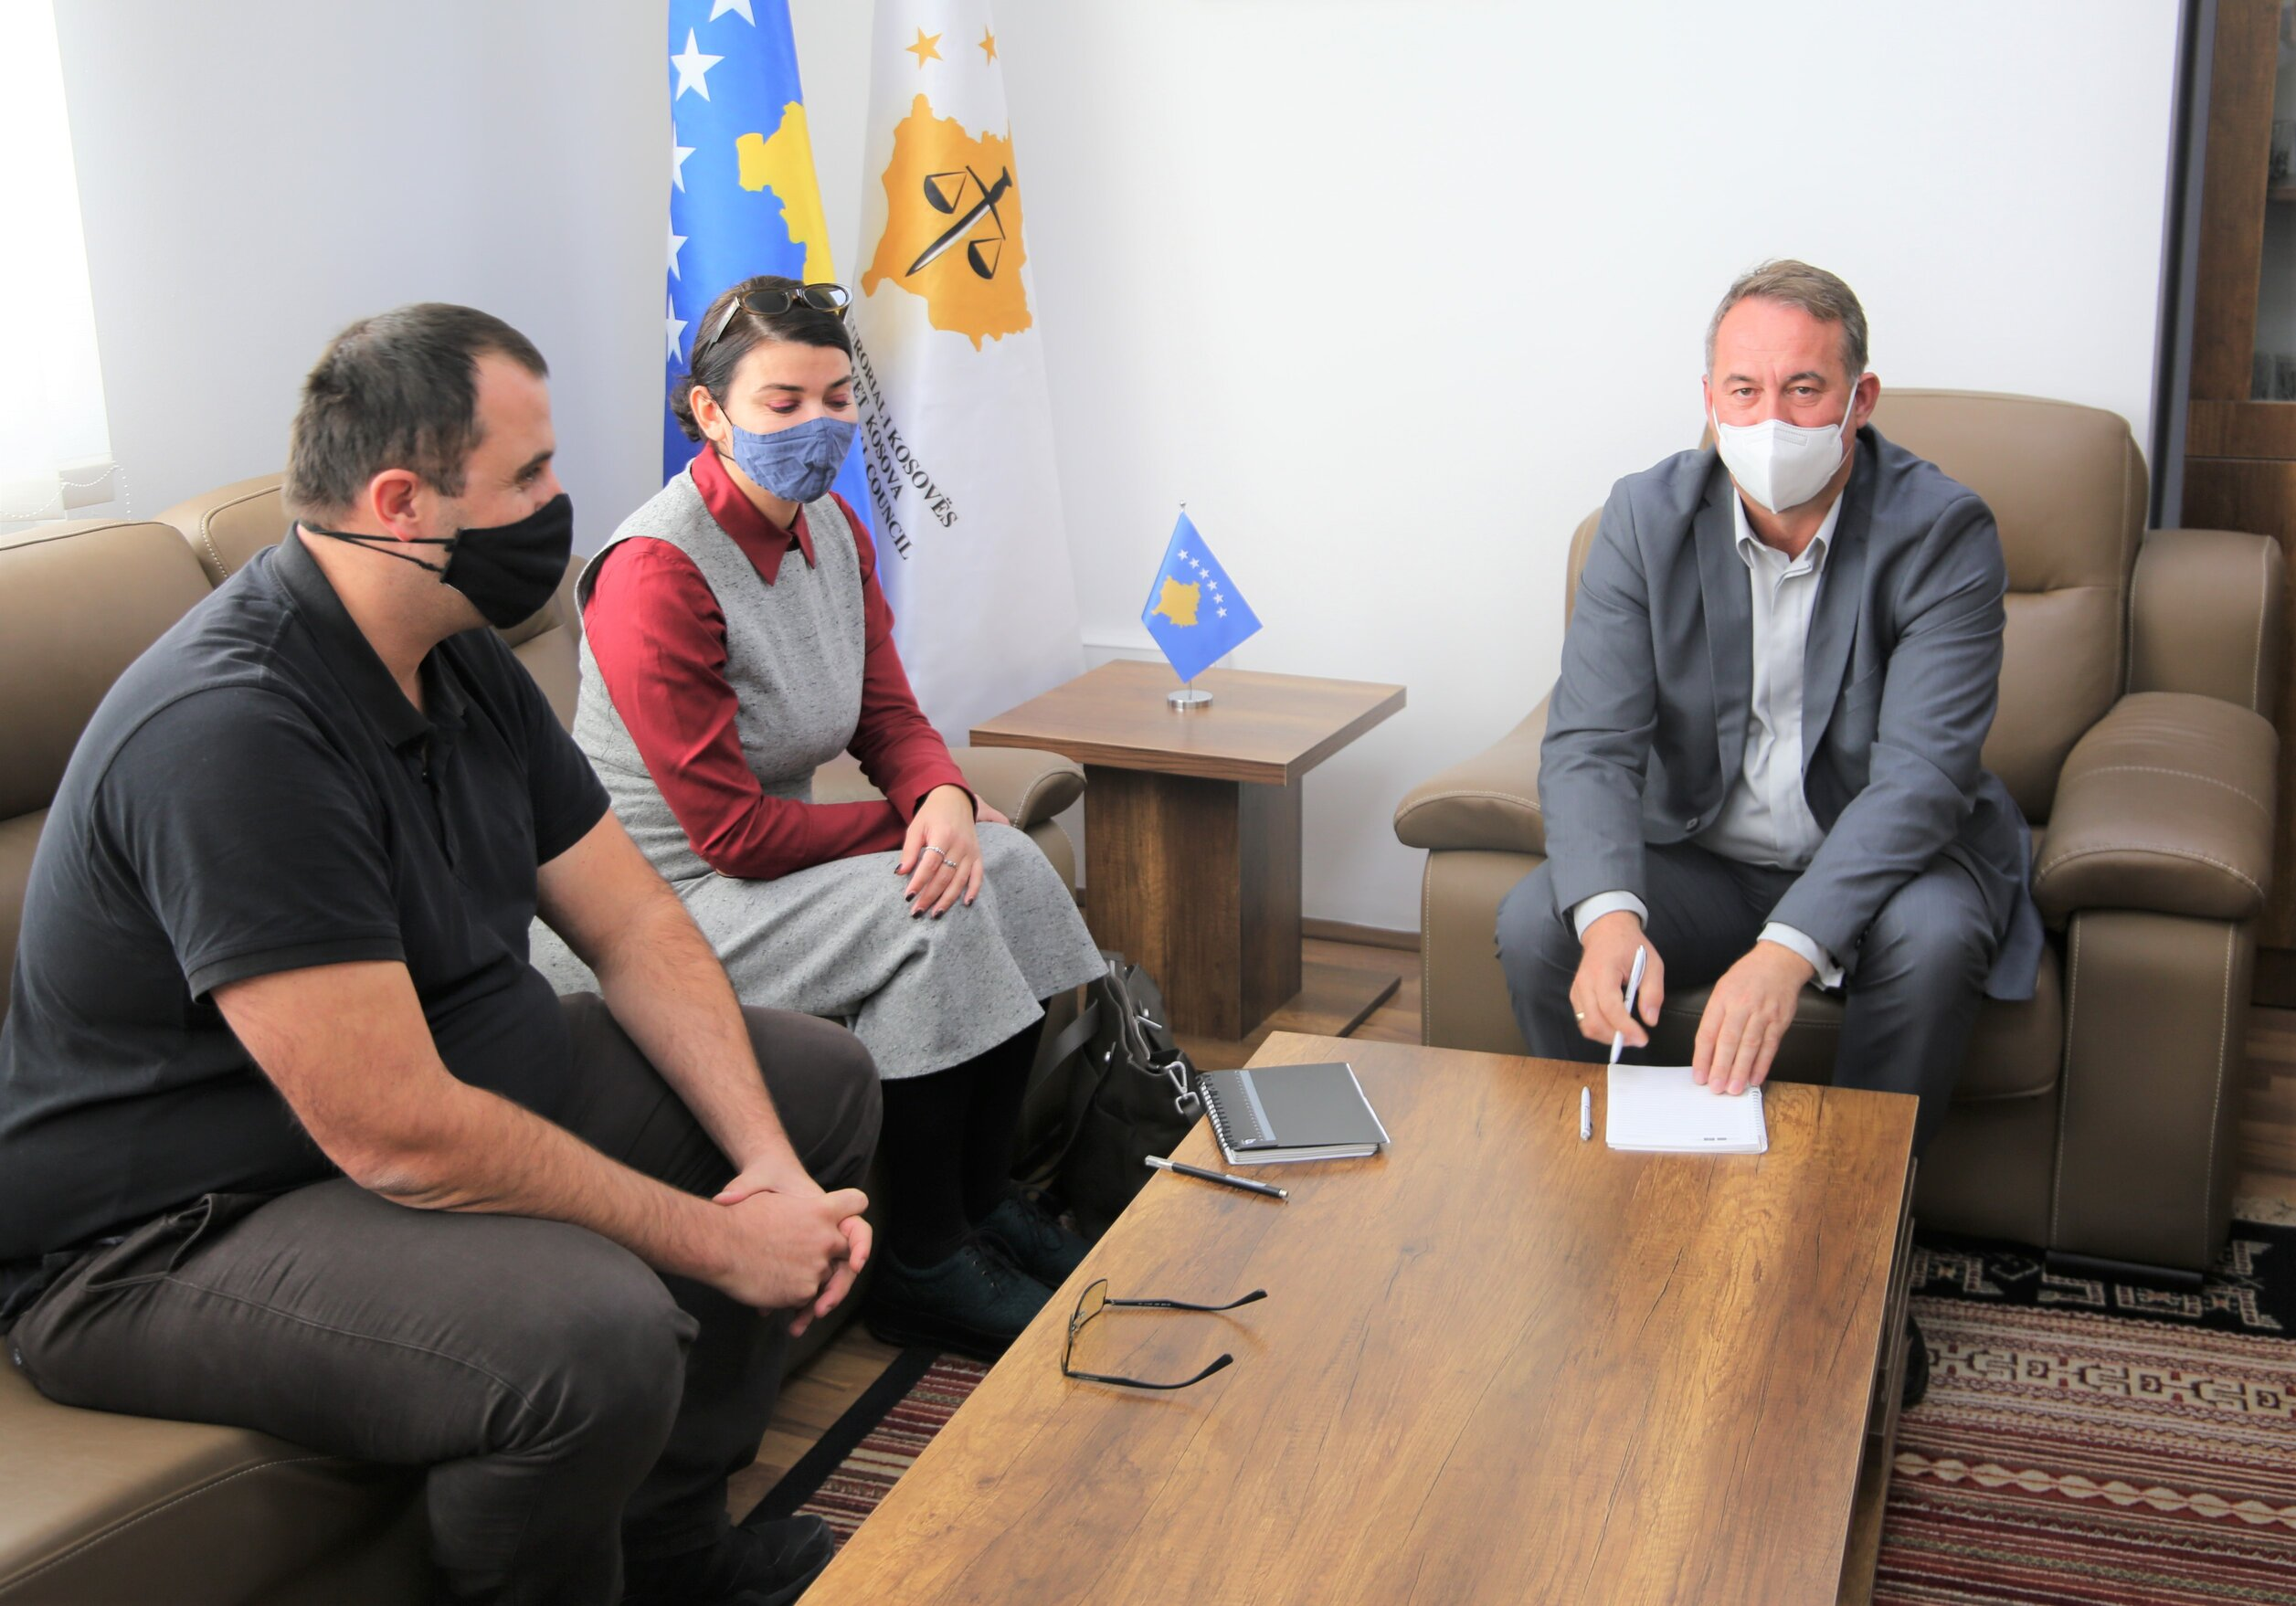 The implementation of monitoring of the prosecutorial system by civil society organizations is discussed